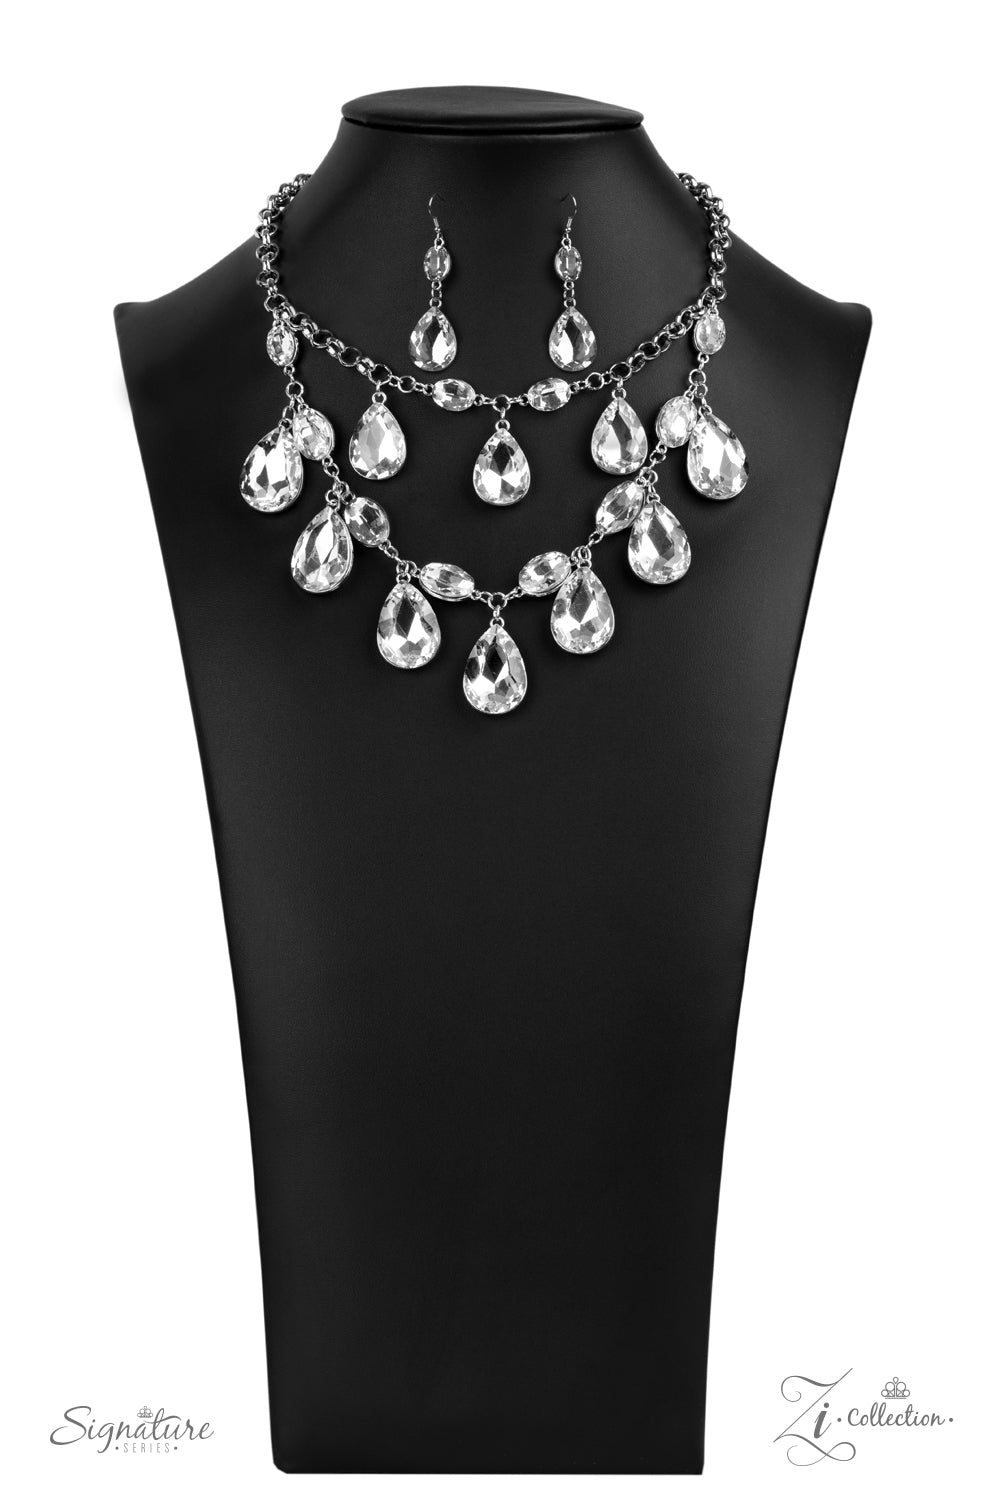 Paparazzi Jewelry & Accessories - The Sarah - Zi Collection. Bling By Titia Boutique